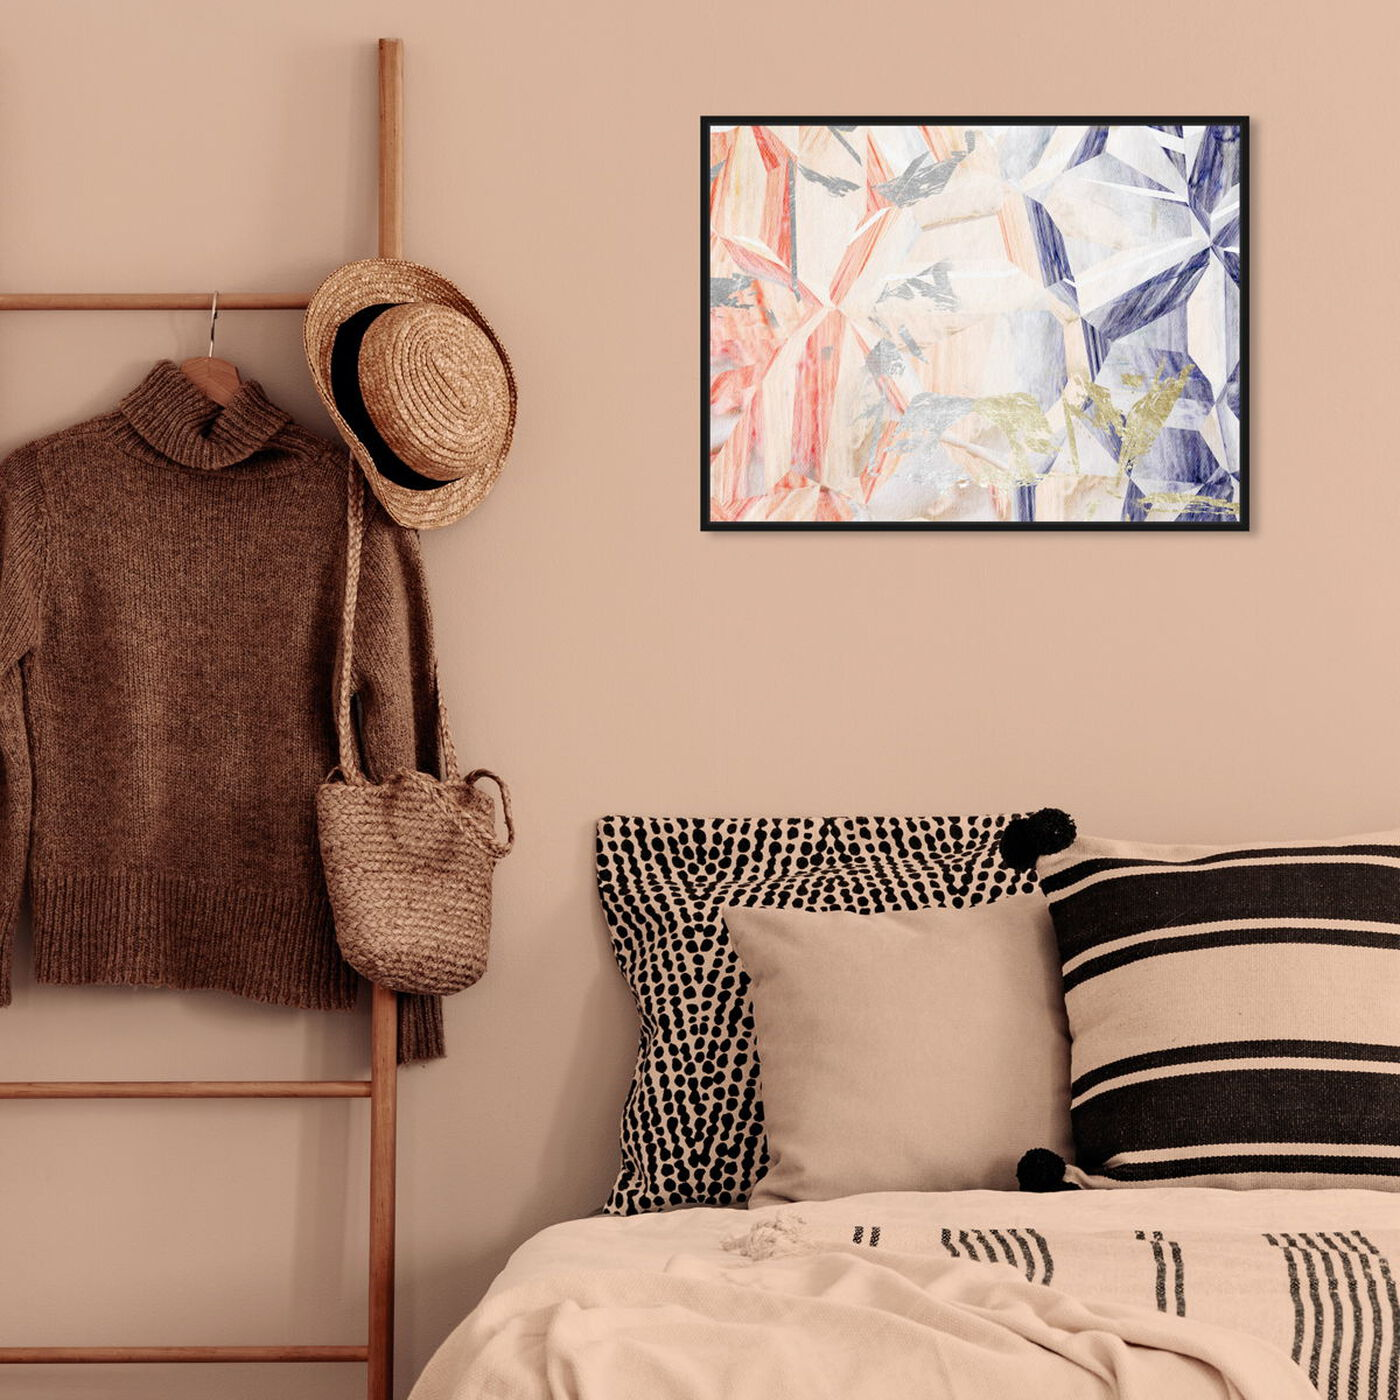 Hanging view of Modernist Kind of Love featuring abstract and crystals art.